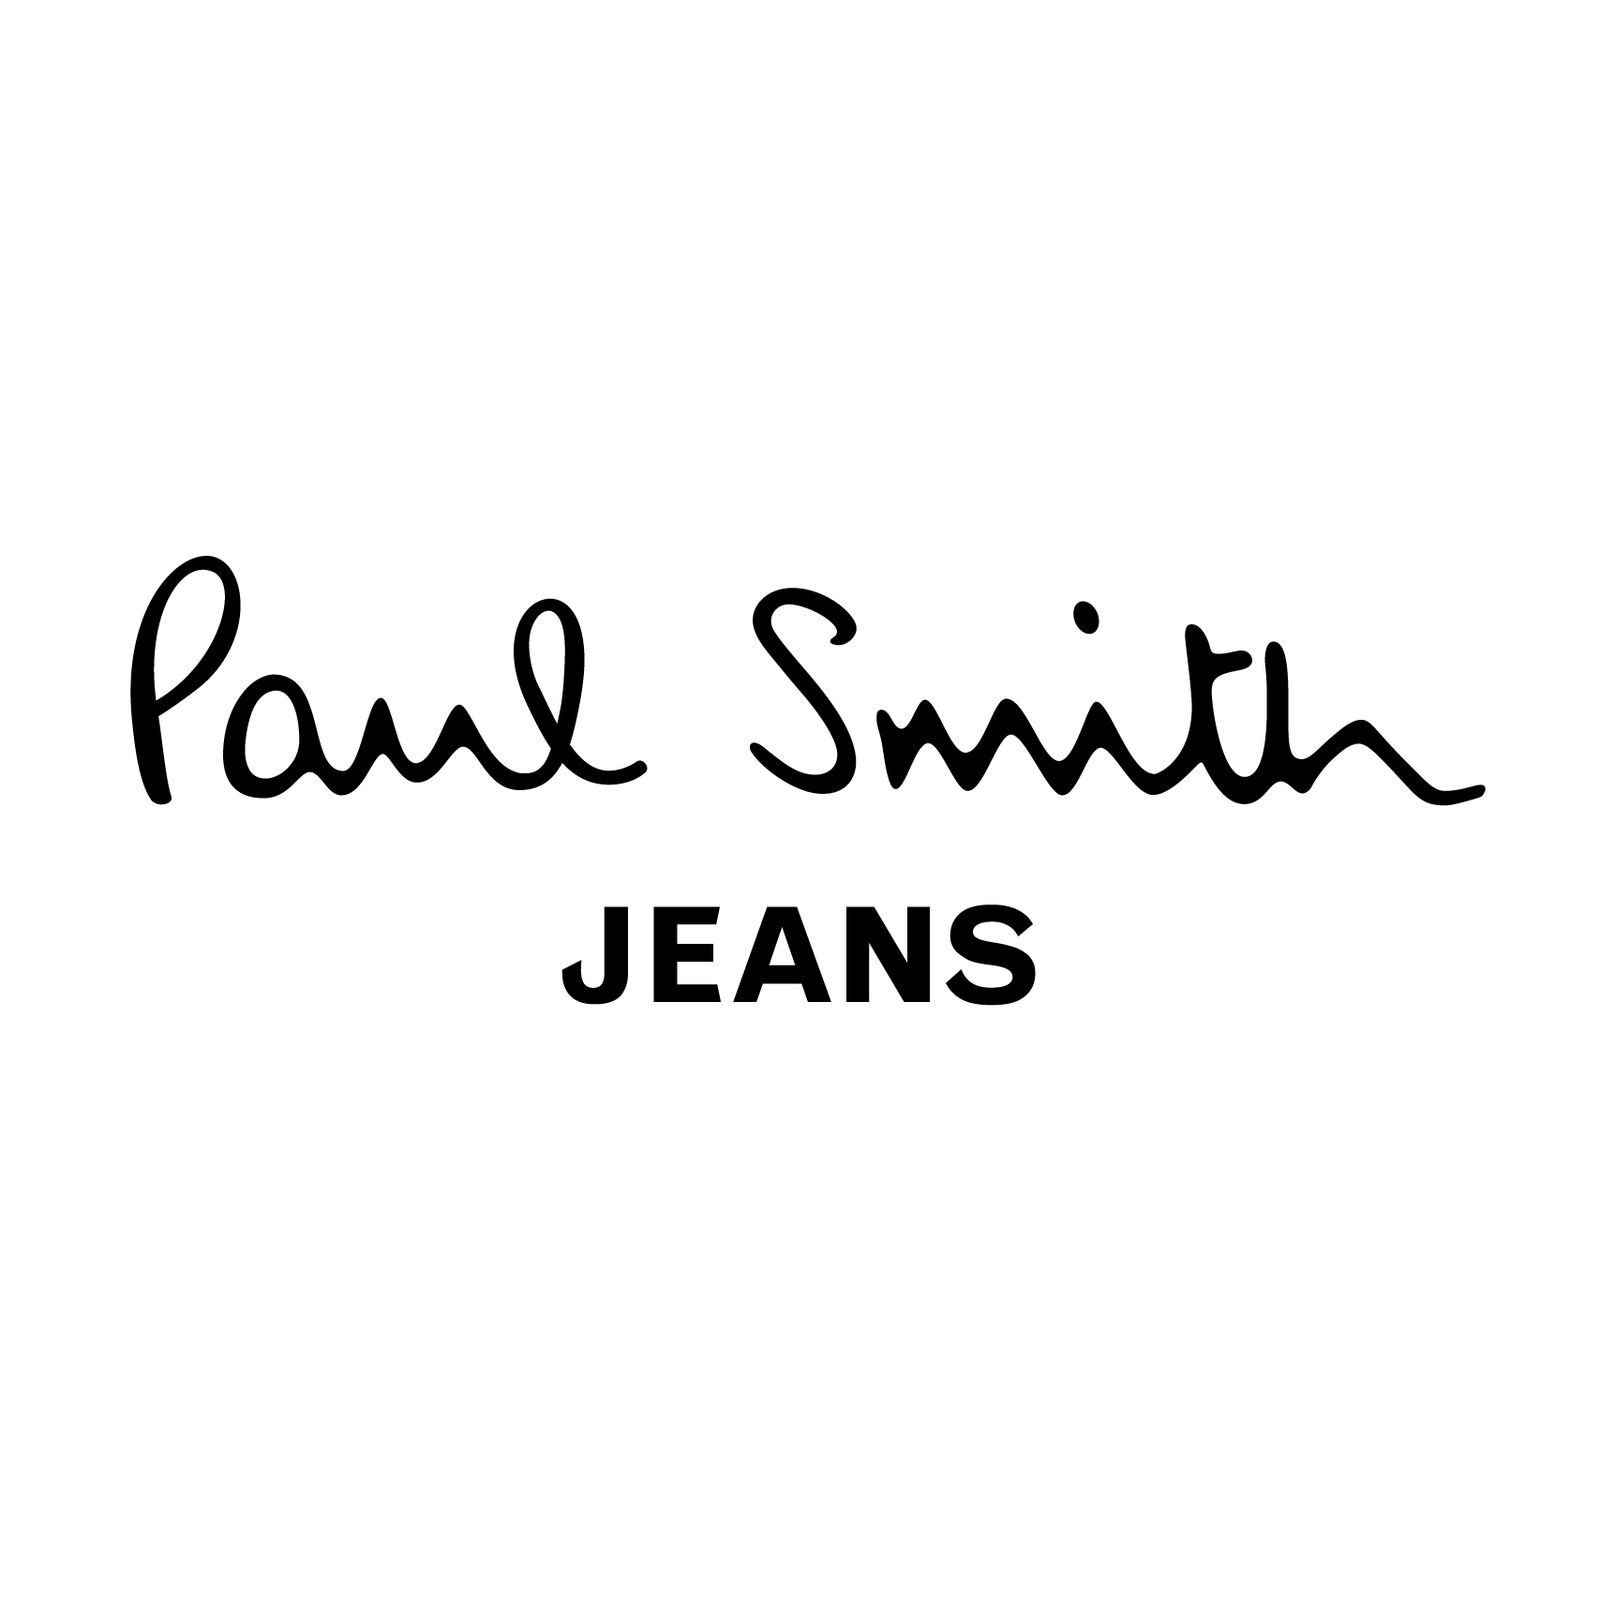 Paul Smith Jeans (Image 1)